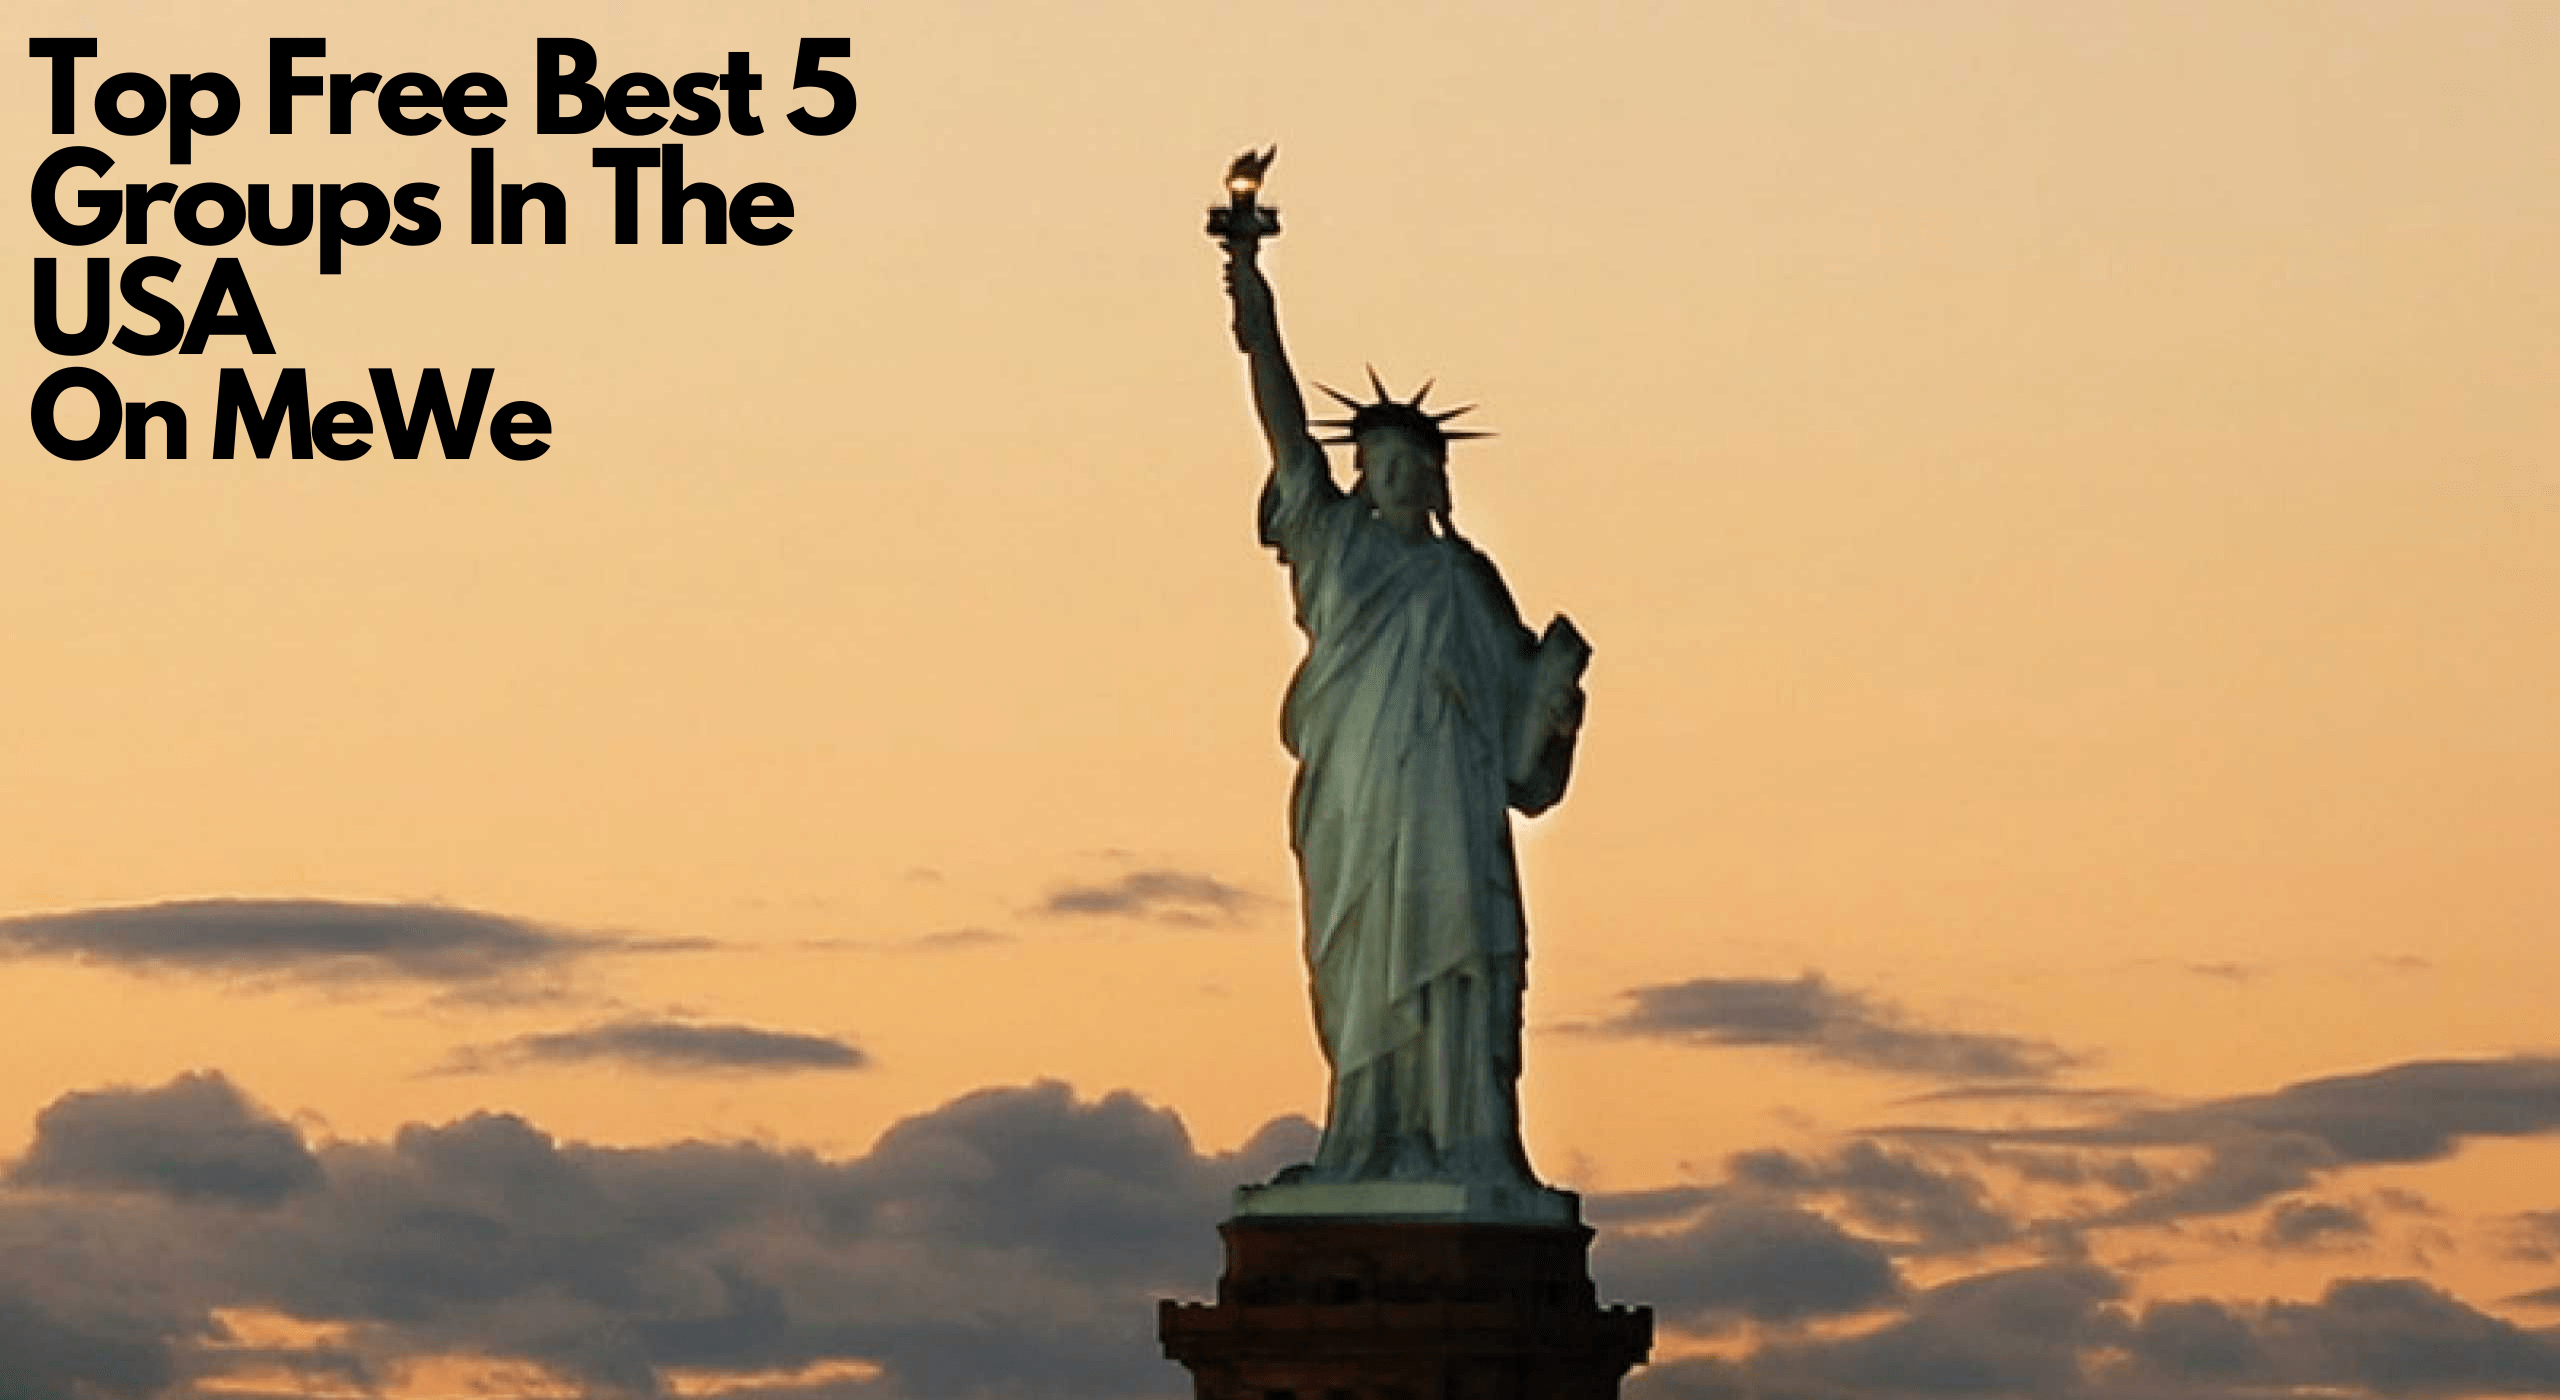 Top Free Best 5 Groups in the USA on MeWe